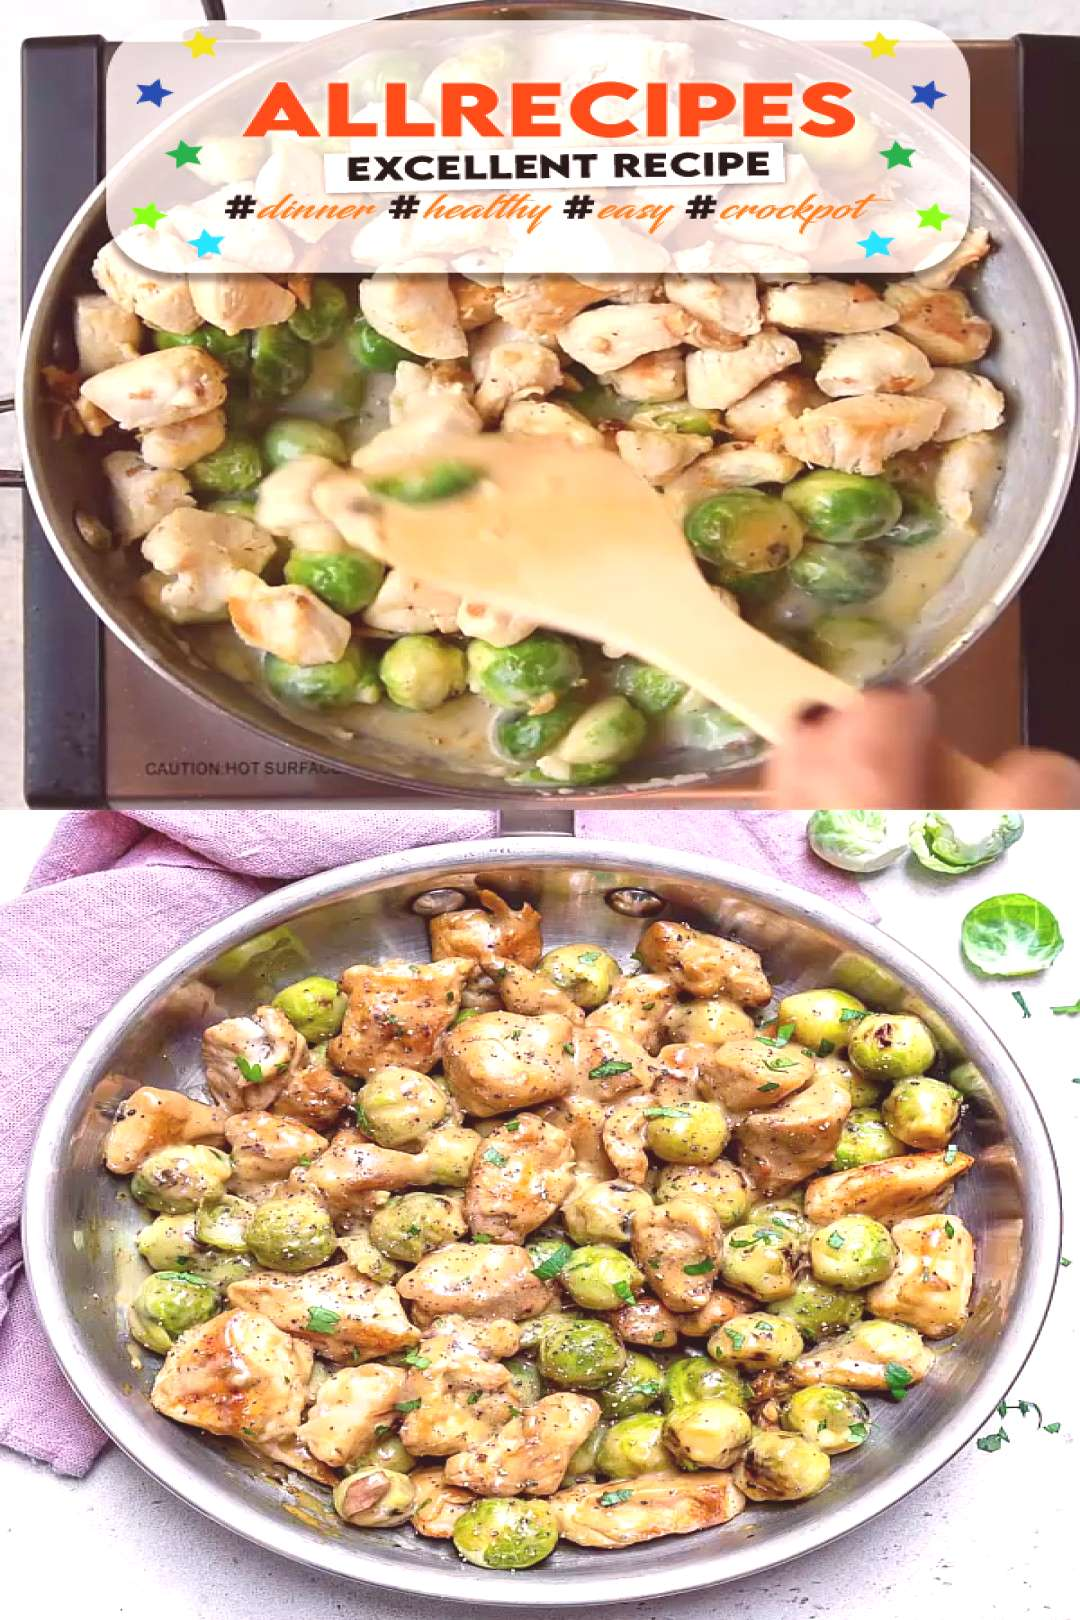 CHICKEN ALFREDO BRUSSELS SPROUTS  - - Enjoy your favorite comfort food without any guilt by making